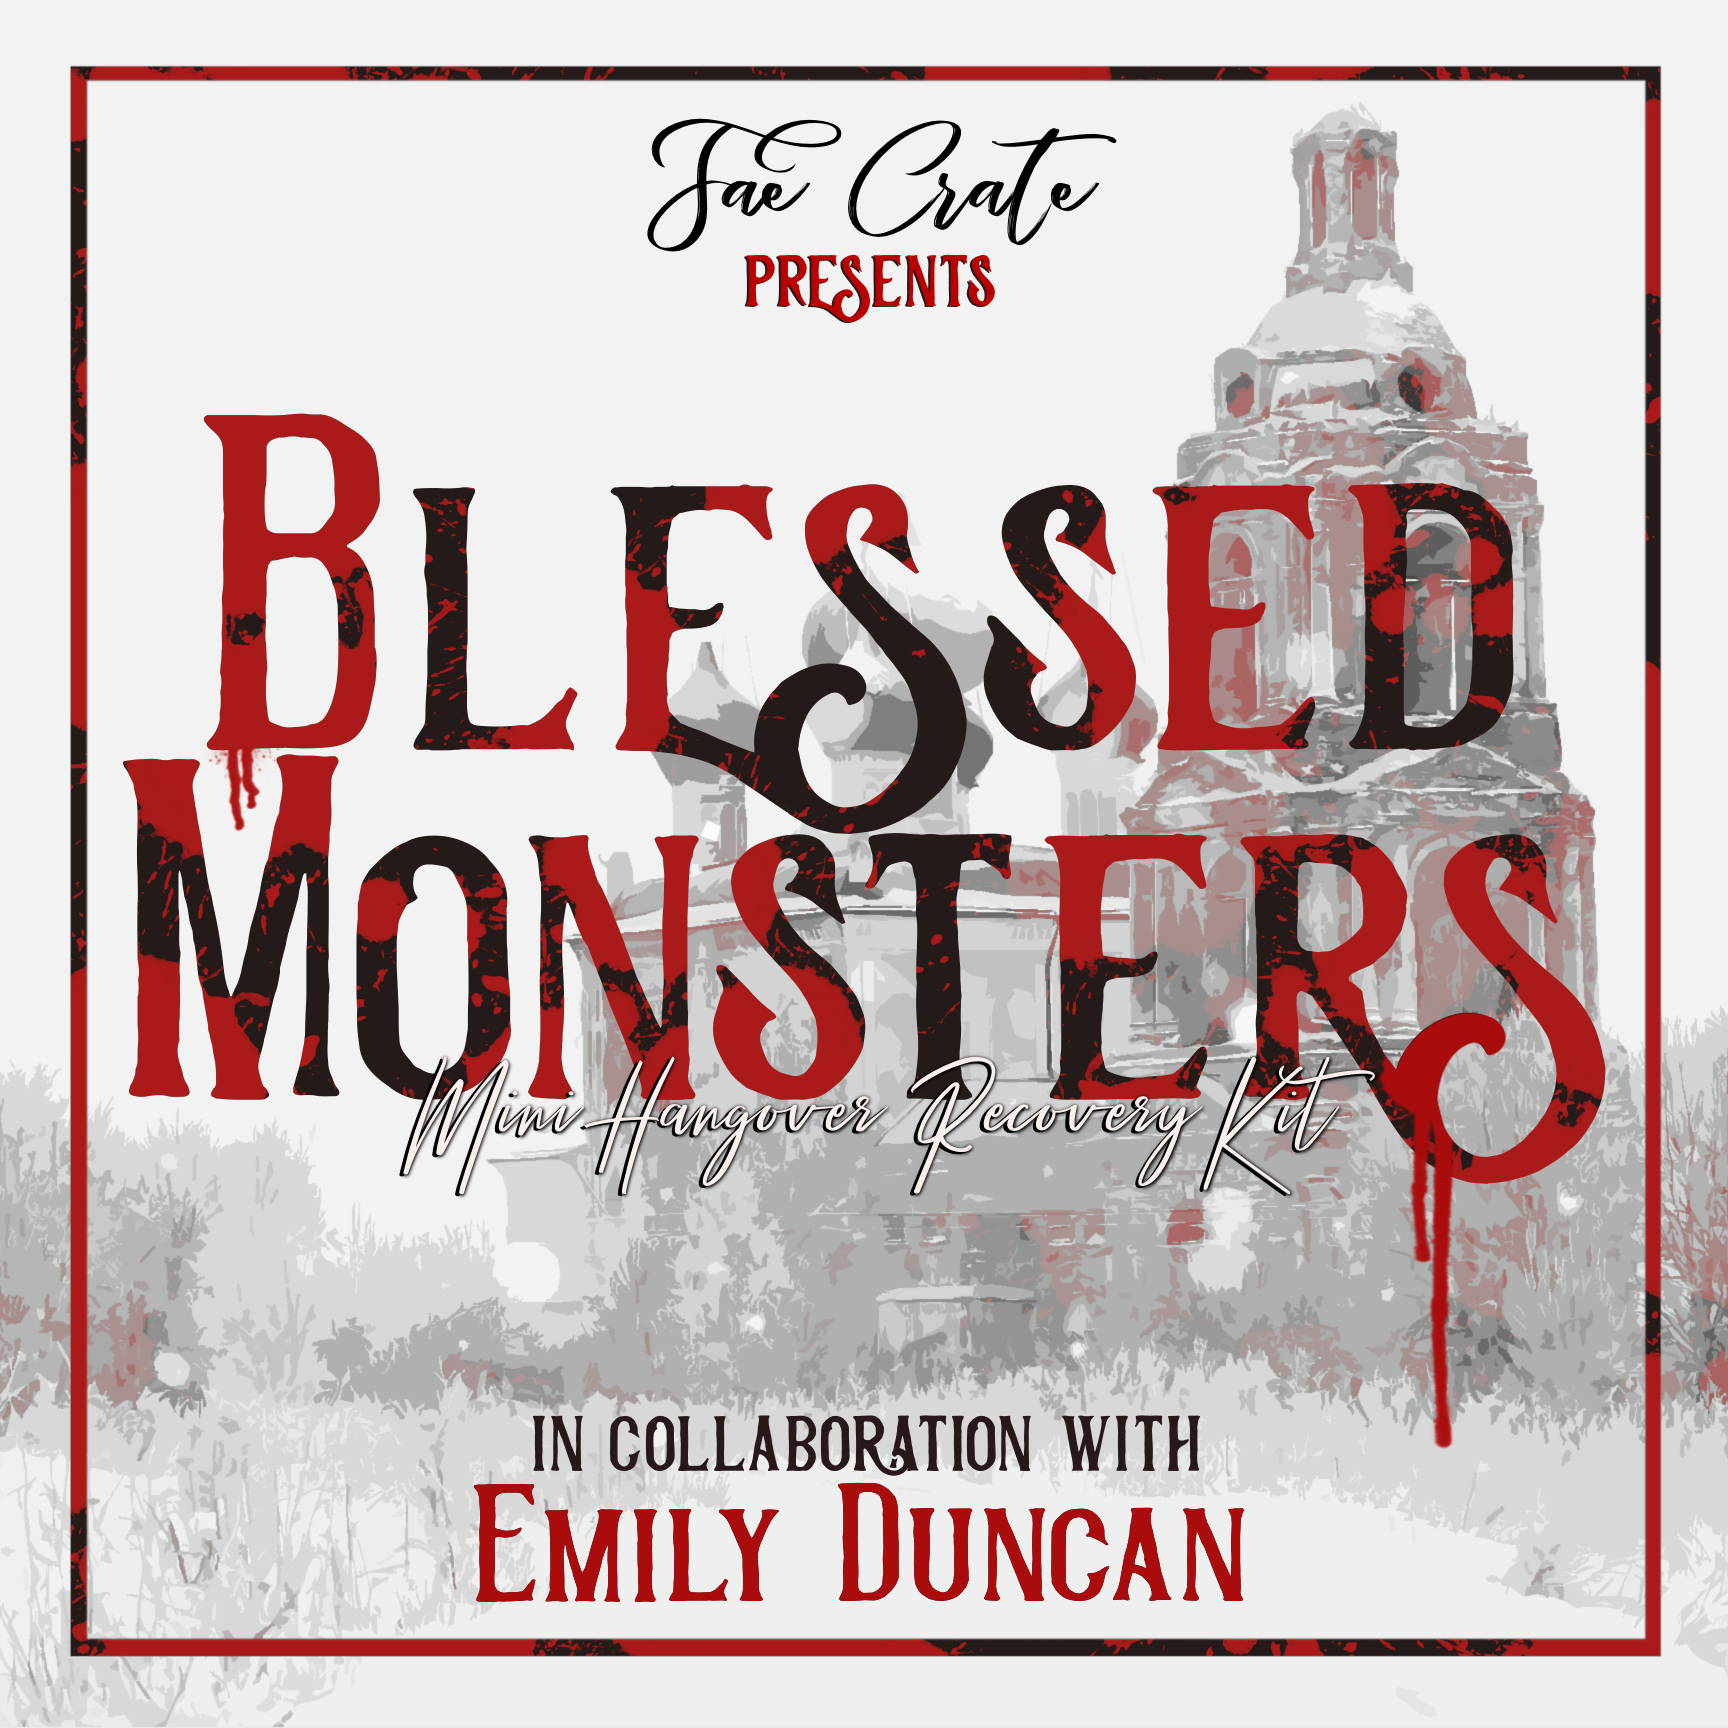 Fae Crate Presents Blessed Monsters Mini Hangover Recovery Kit in Collaboration with Emily Duncan